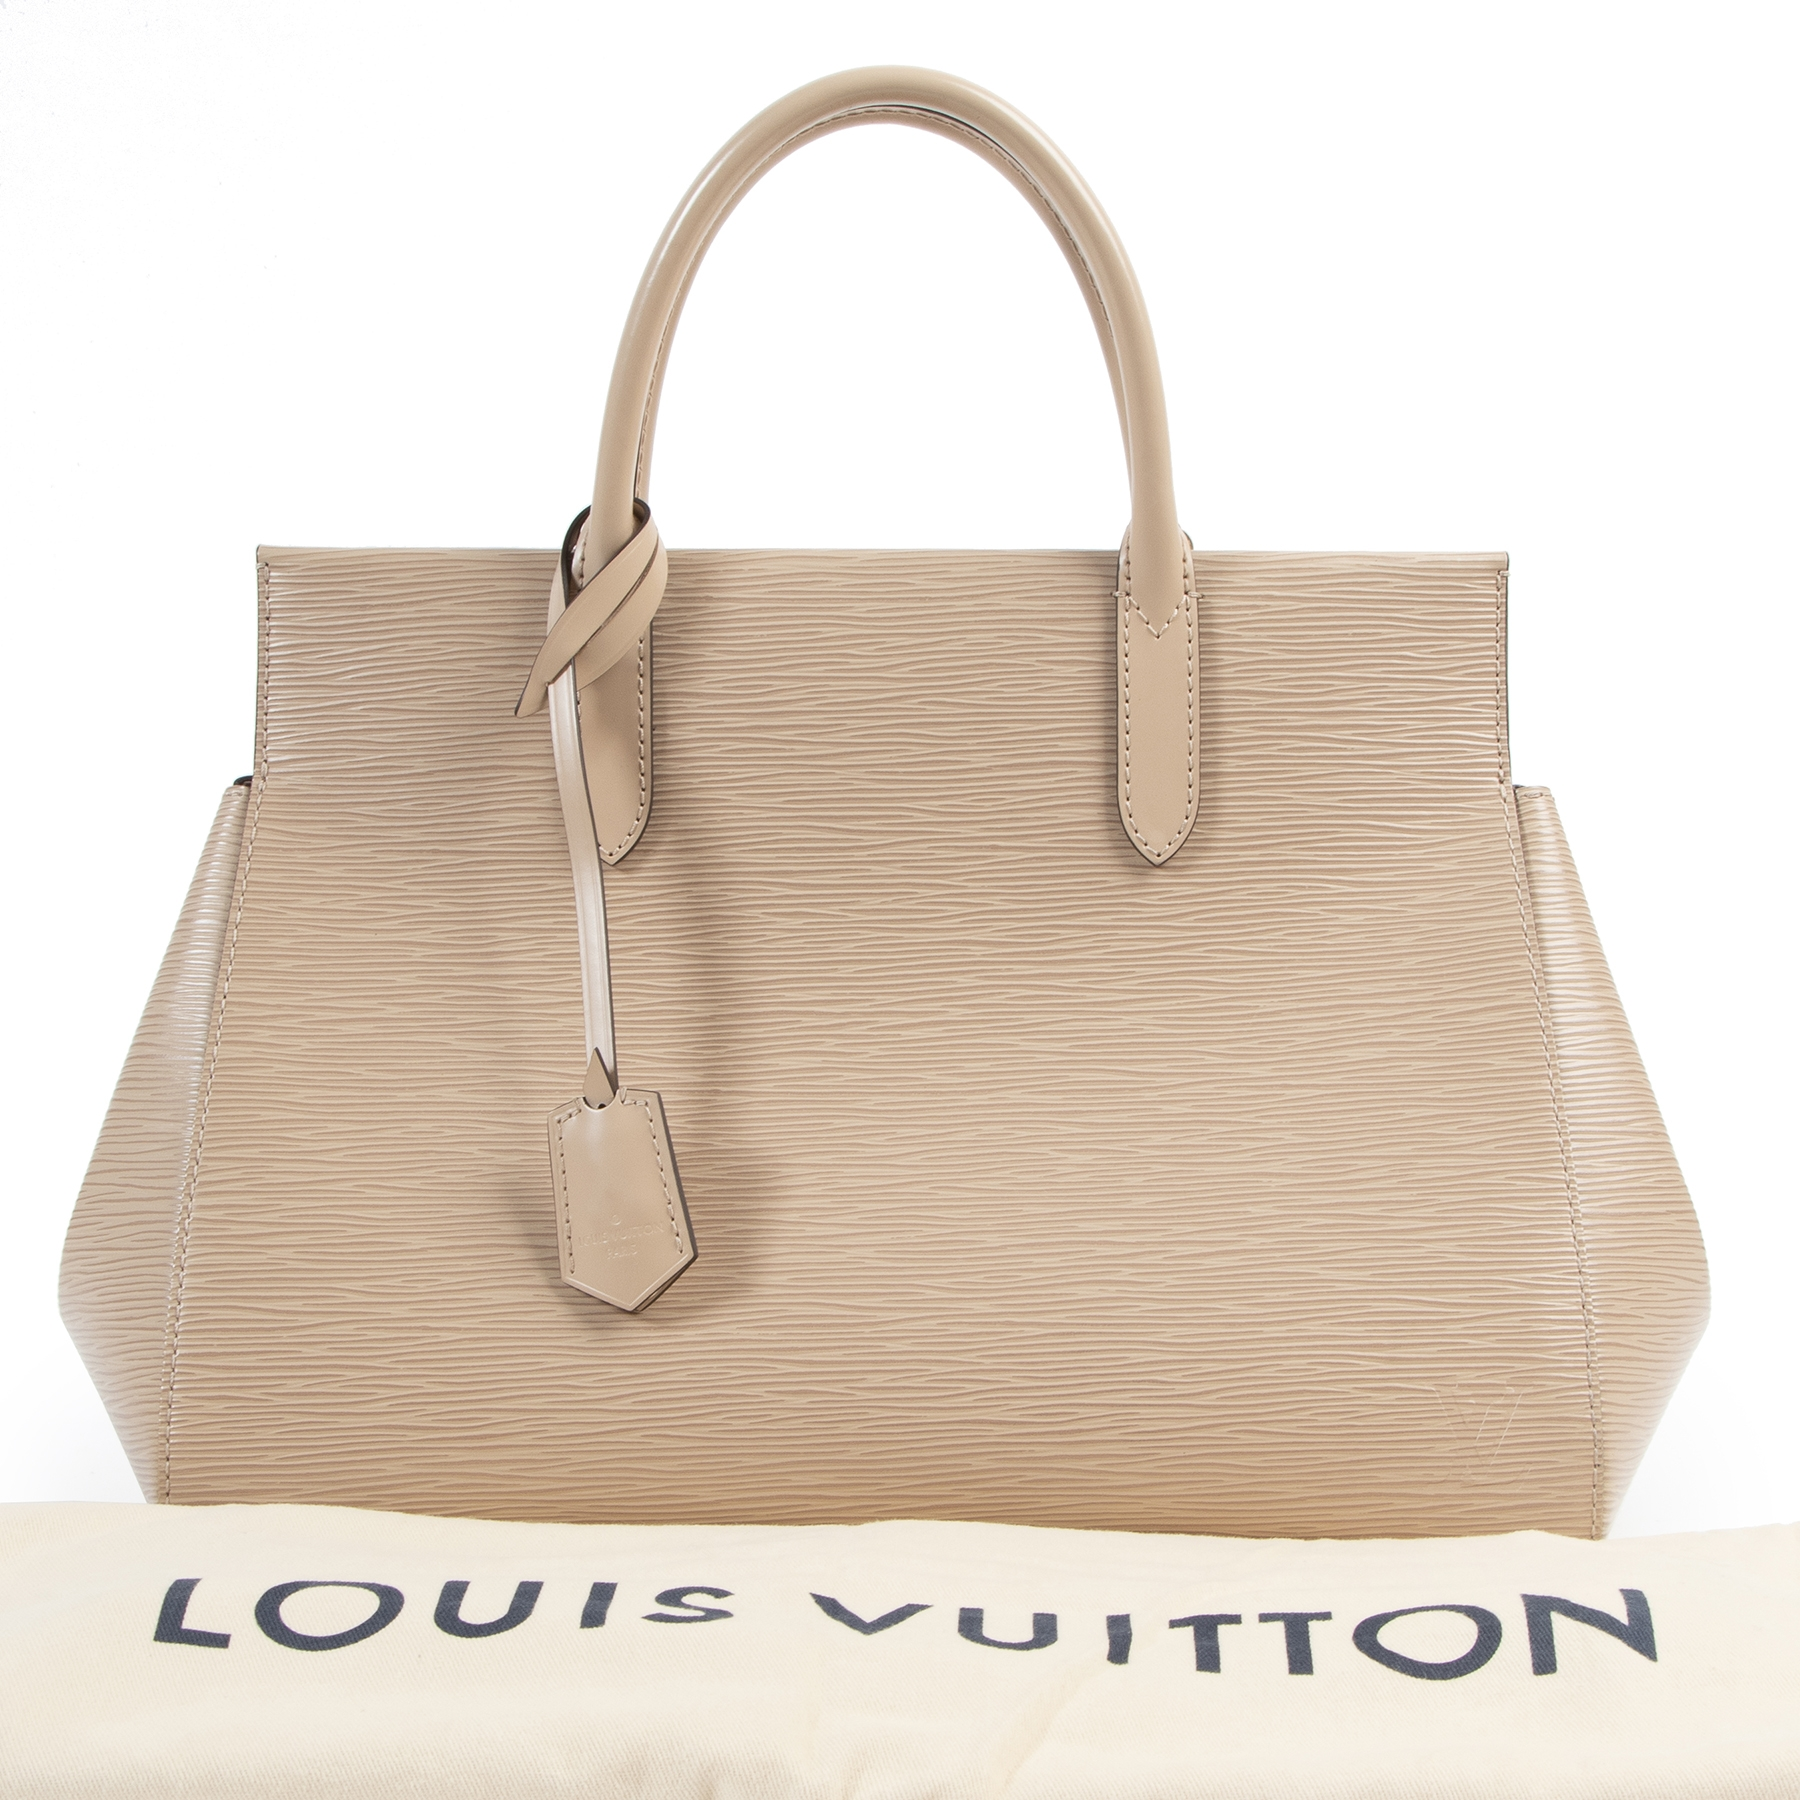 pour le meilleur prix seconde main koop veiig online Louis Vuitton Nude/Beige Epi Marly Shoulder Bag